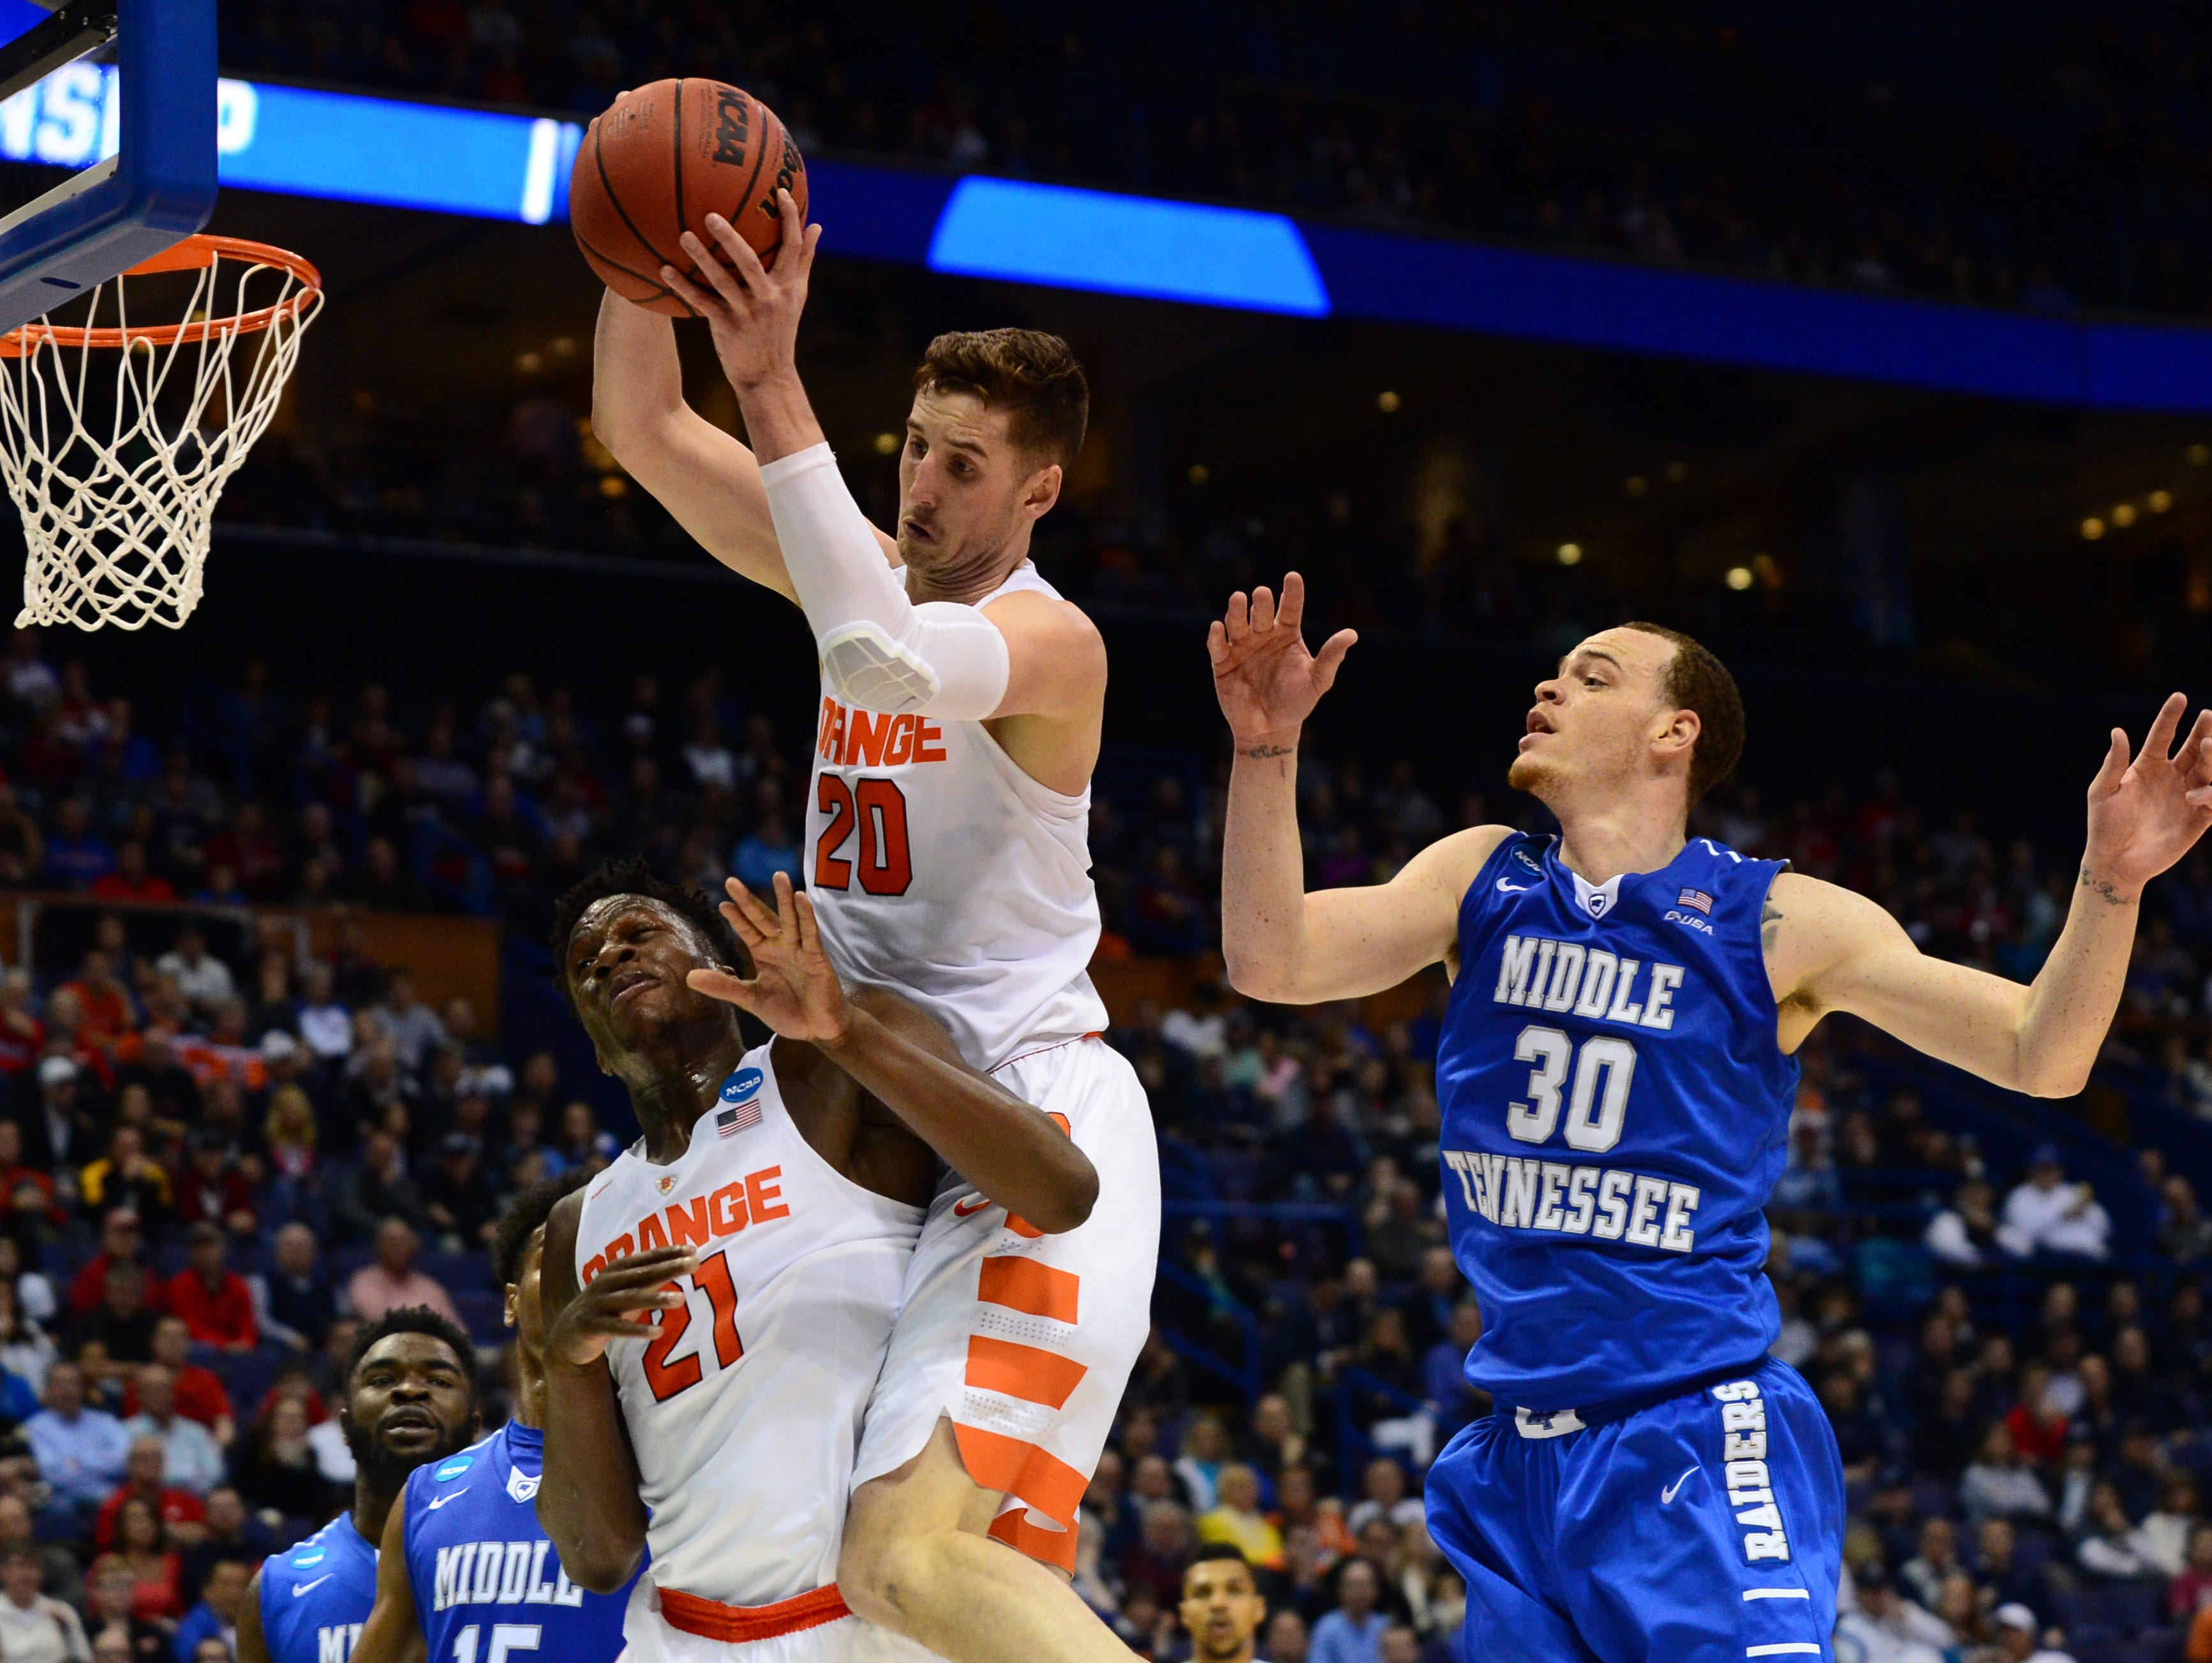 Syracuse's Tyler Lydon, center, an Elizaville native, falls on forward Tyler Roberson as Middle Tennessee's Reggie Upshaw looks on at Scottrade Center in St. Louis, Missouri Sunday.